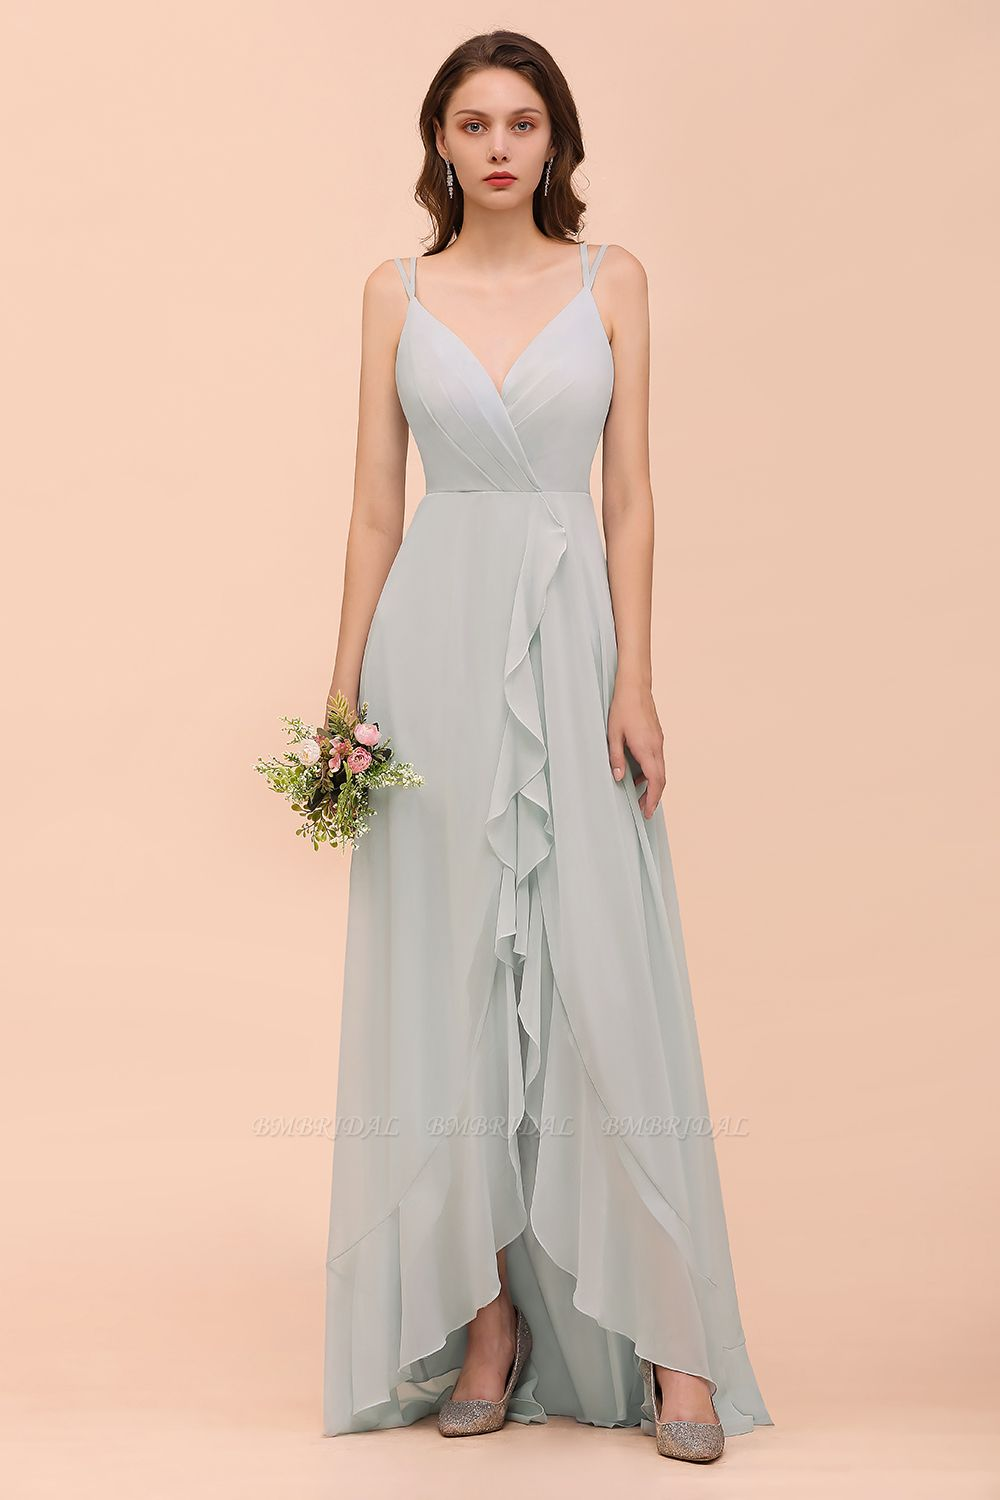 BMbridal Affordable V-Neck Ruffle Mist Chiffon Bridesmaid Dresses Affordable